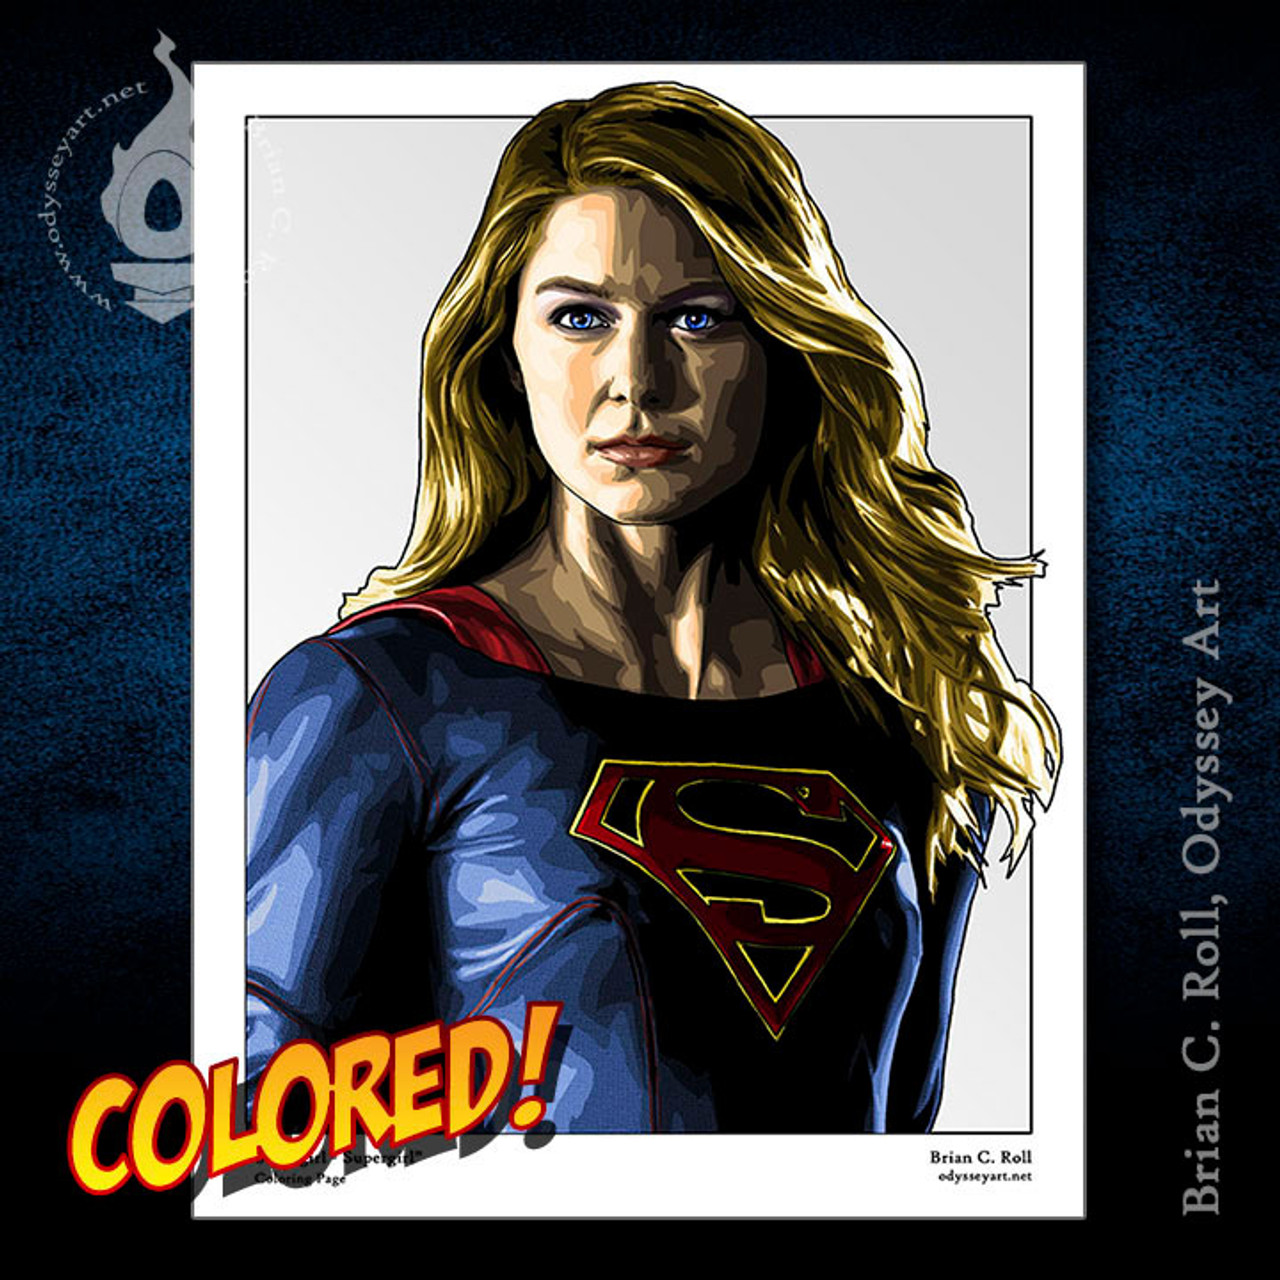 Supergirl Coloring Page Odyssey Art Art Of Brian C Roll